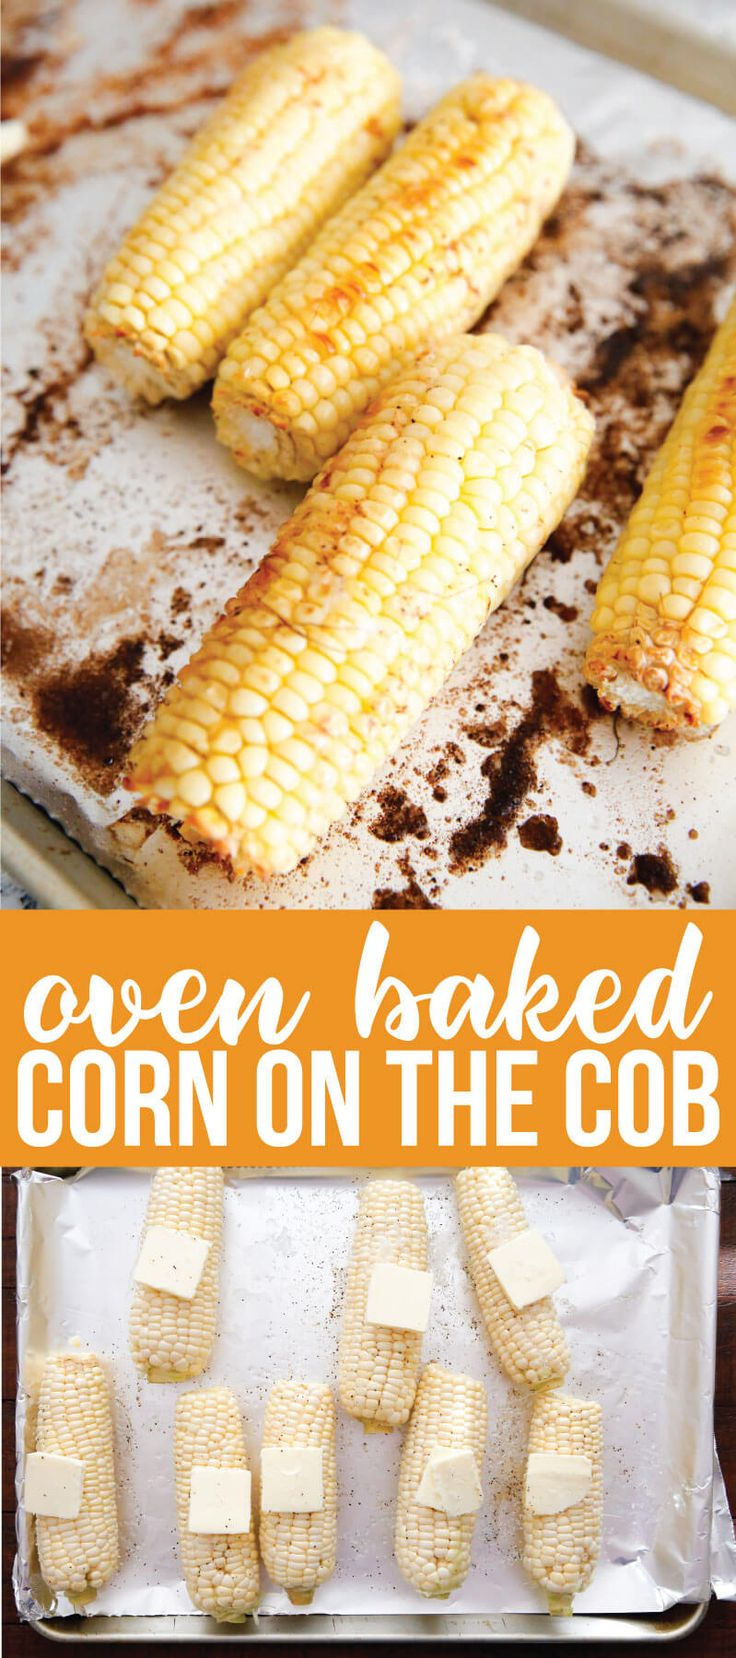 The very best way to make corn - Oven Baked Corn on the Cob - the how to from www.thirtyhandmadedays.com